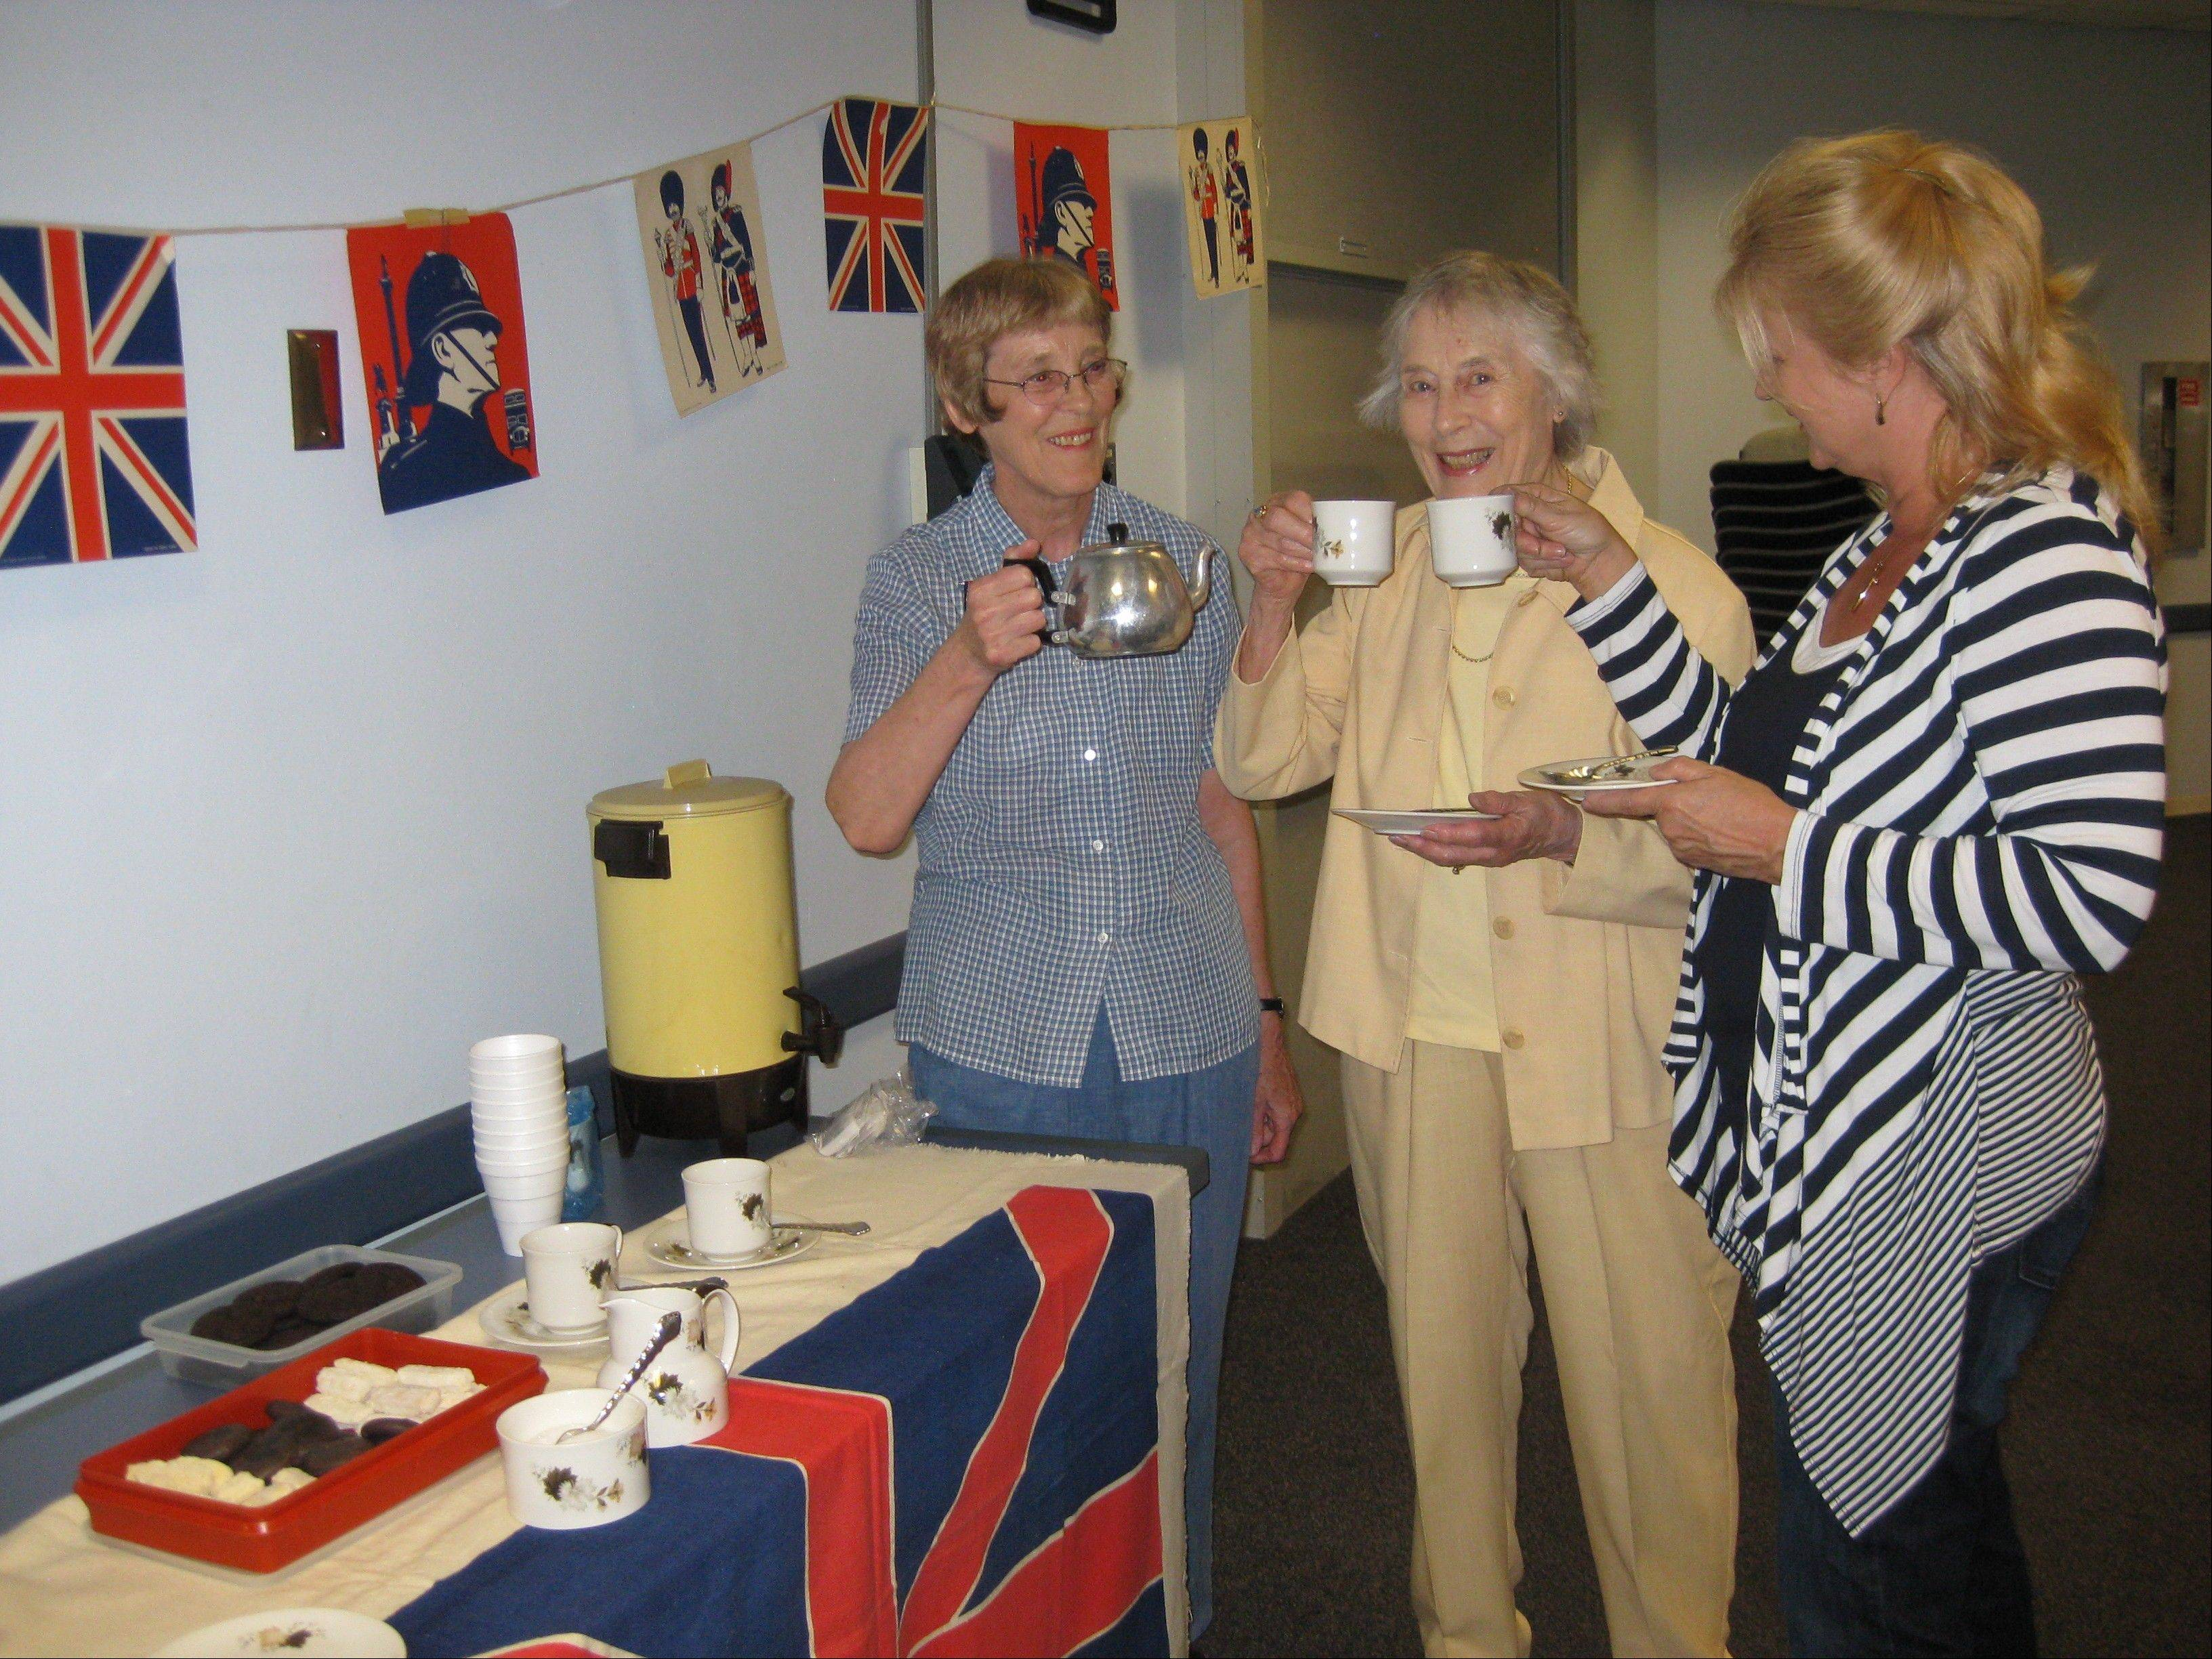 Jill Hauser, regent of the Naperville chapter of the Daughters of the British Empire USA, pours tea for member Shelia Brown and Georgina Dirker, a visitor from St. Charles, at a recent DBE meeting.